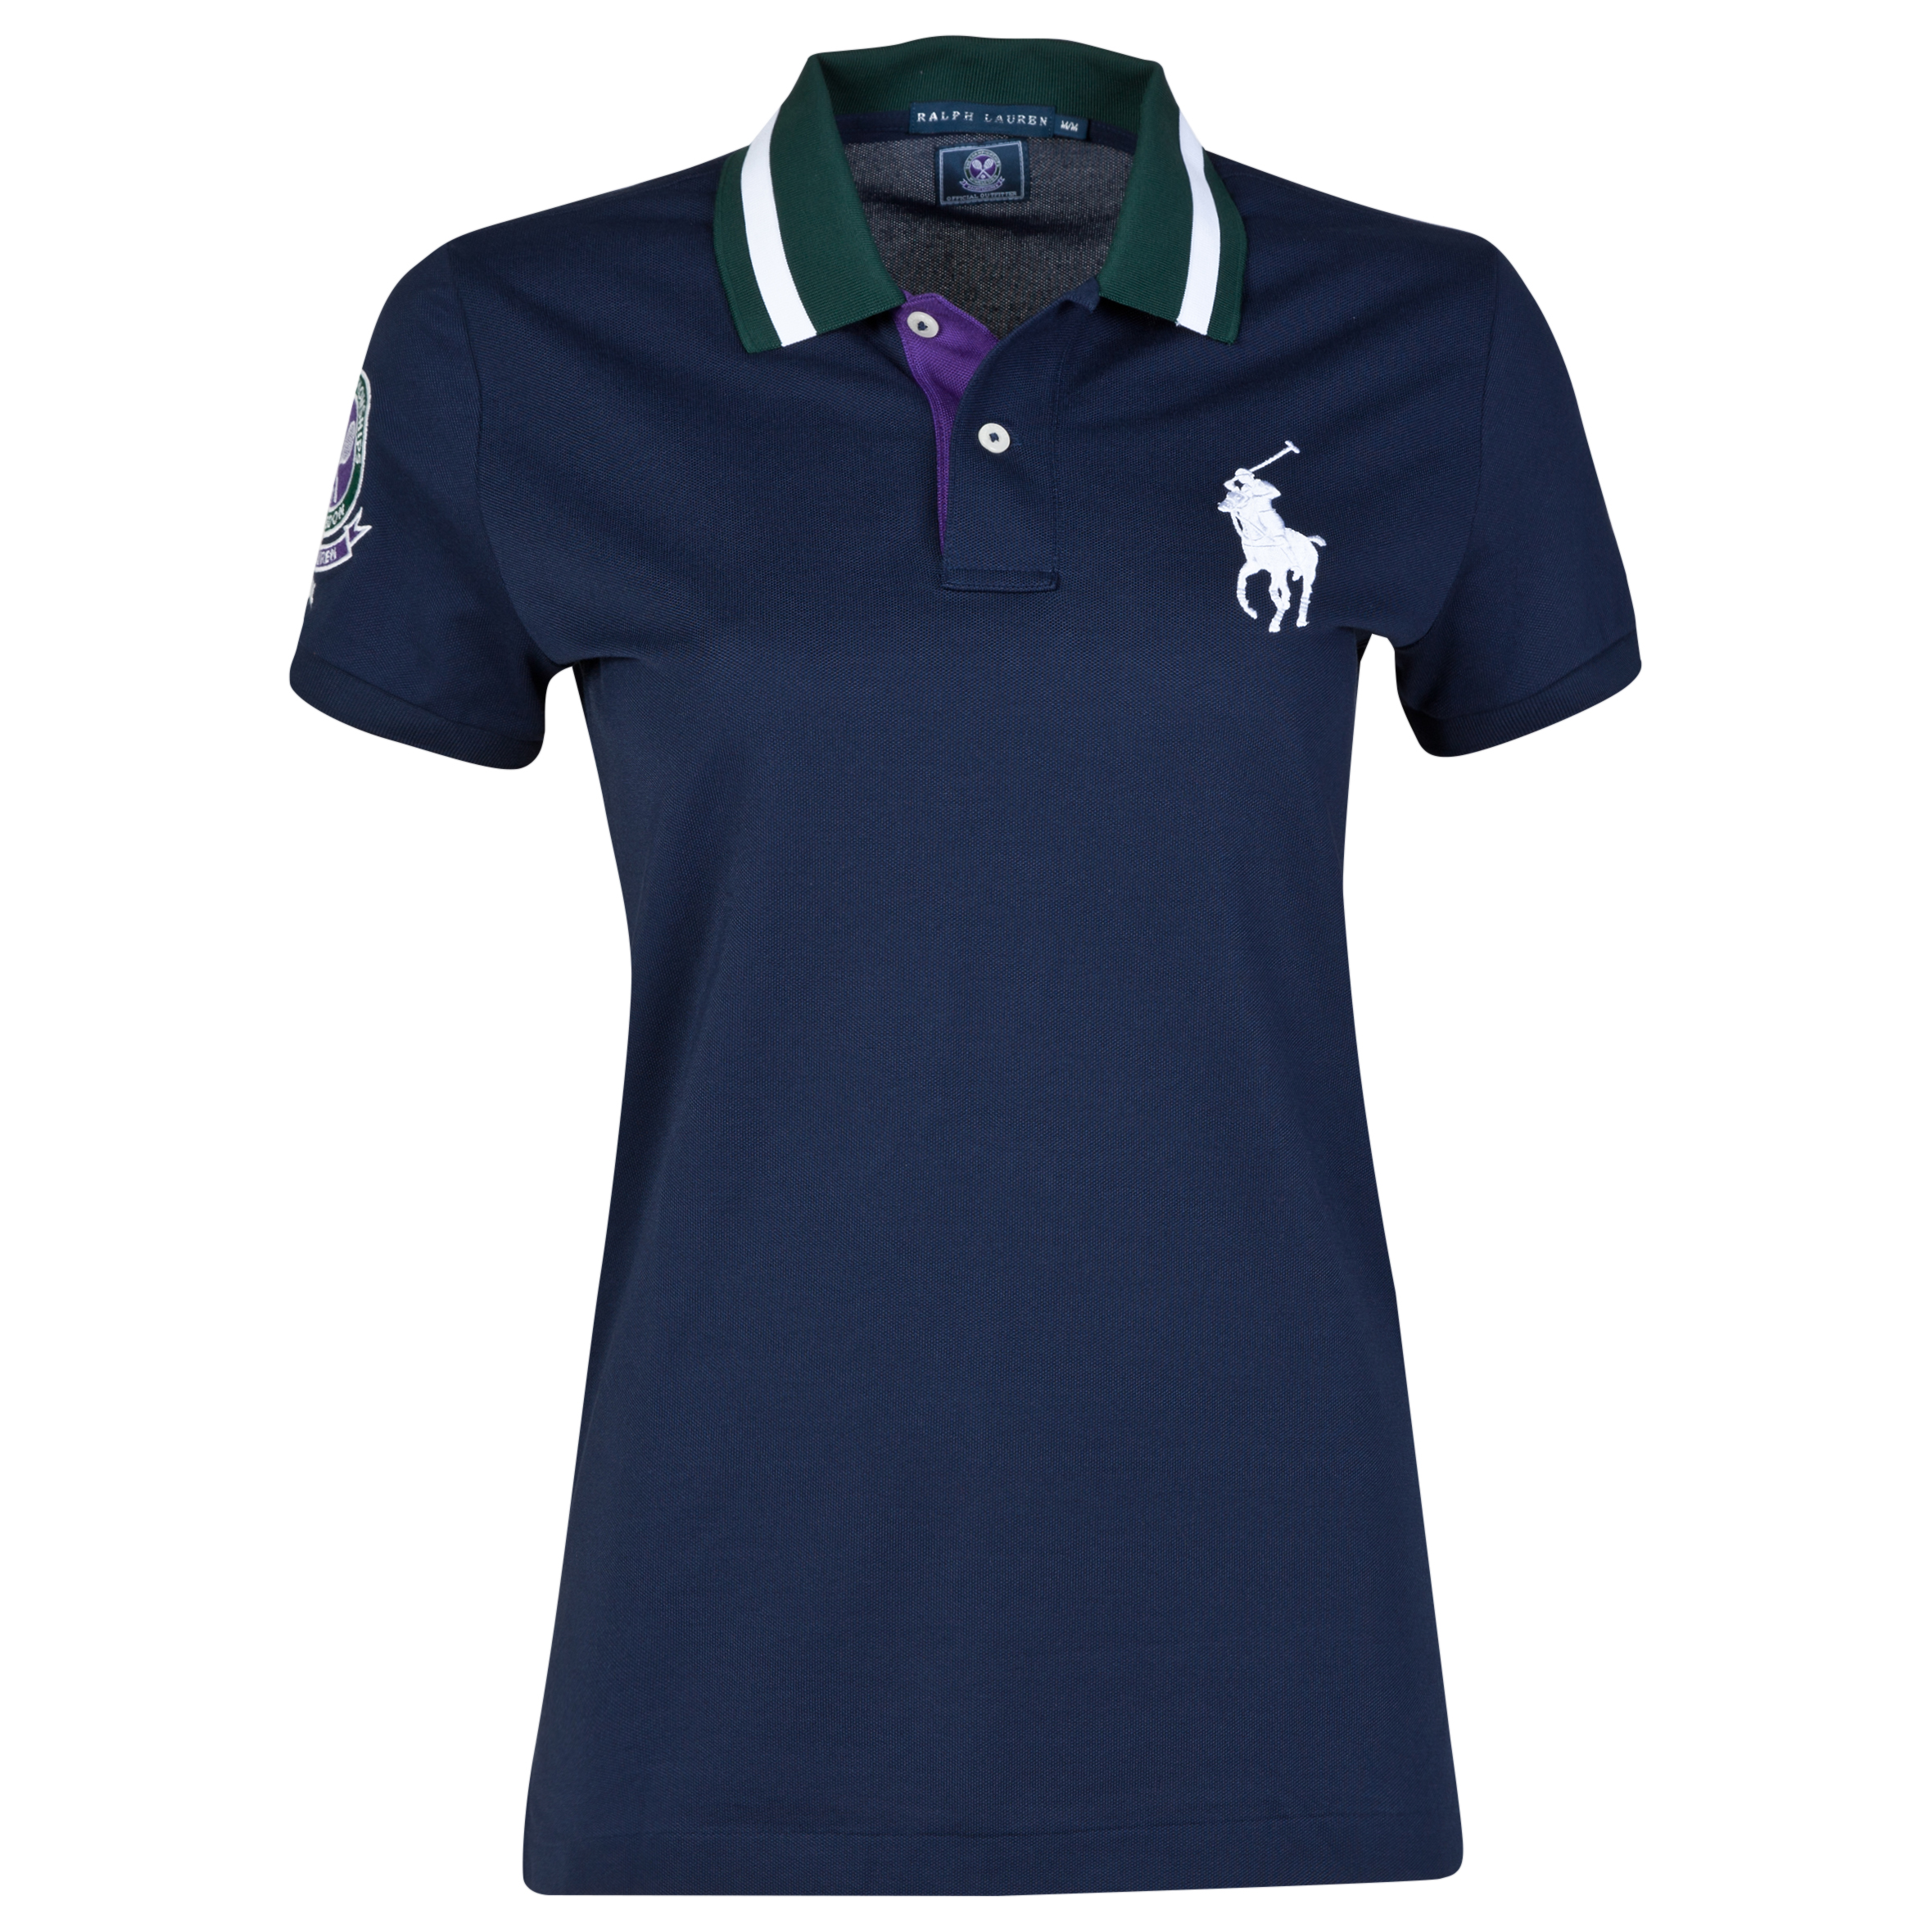 Wimbledon Ralph Lauren Wimbledon Ball Girl Polo - Womens Navy